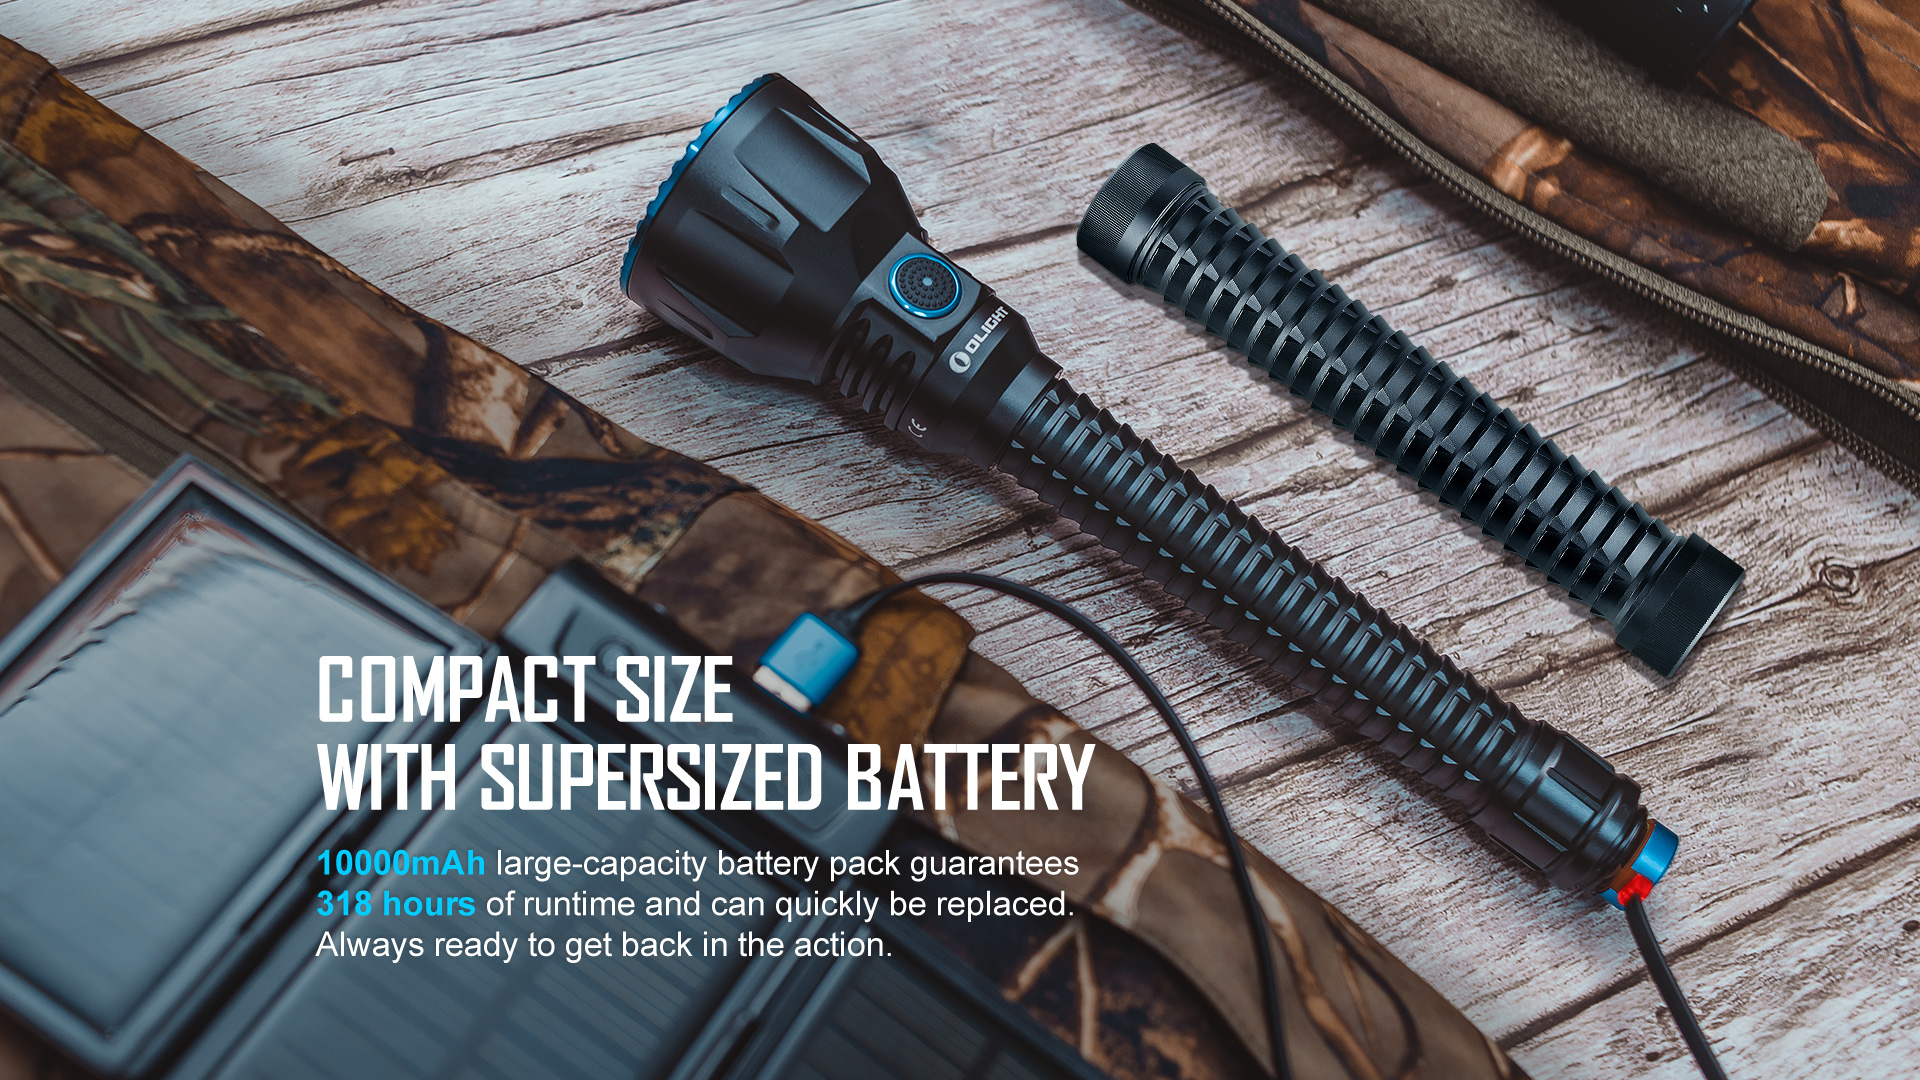 Compact and powerful tactical flashlight